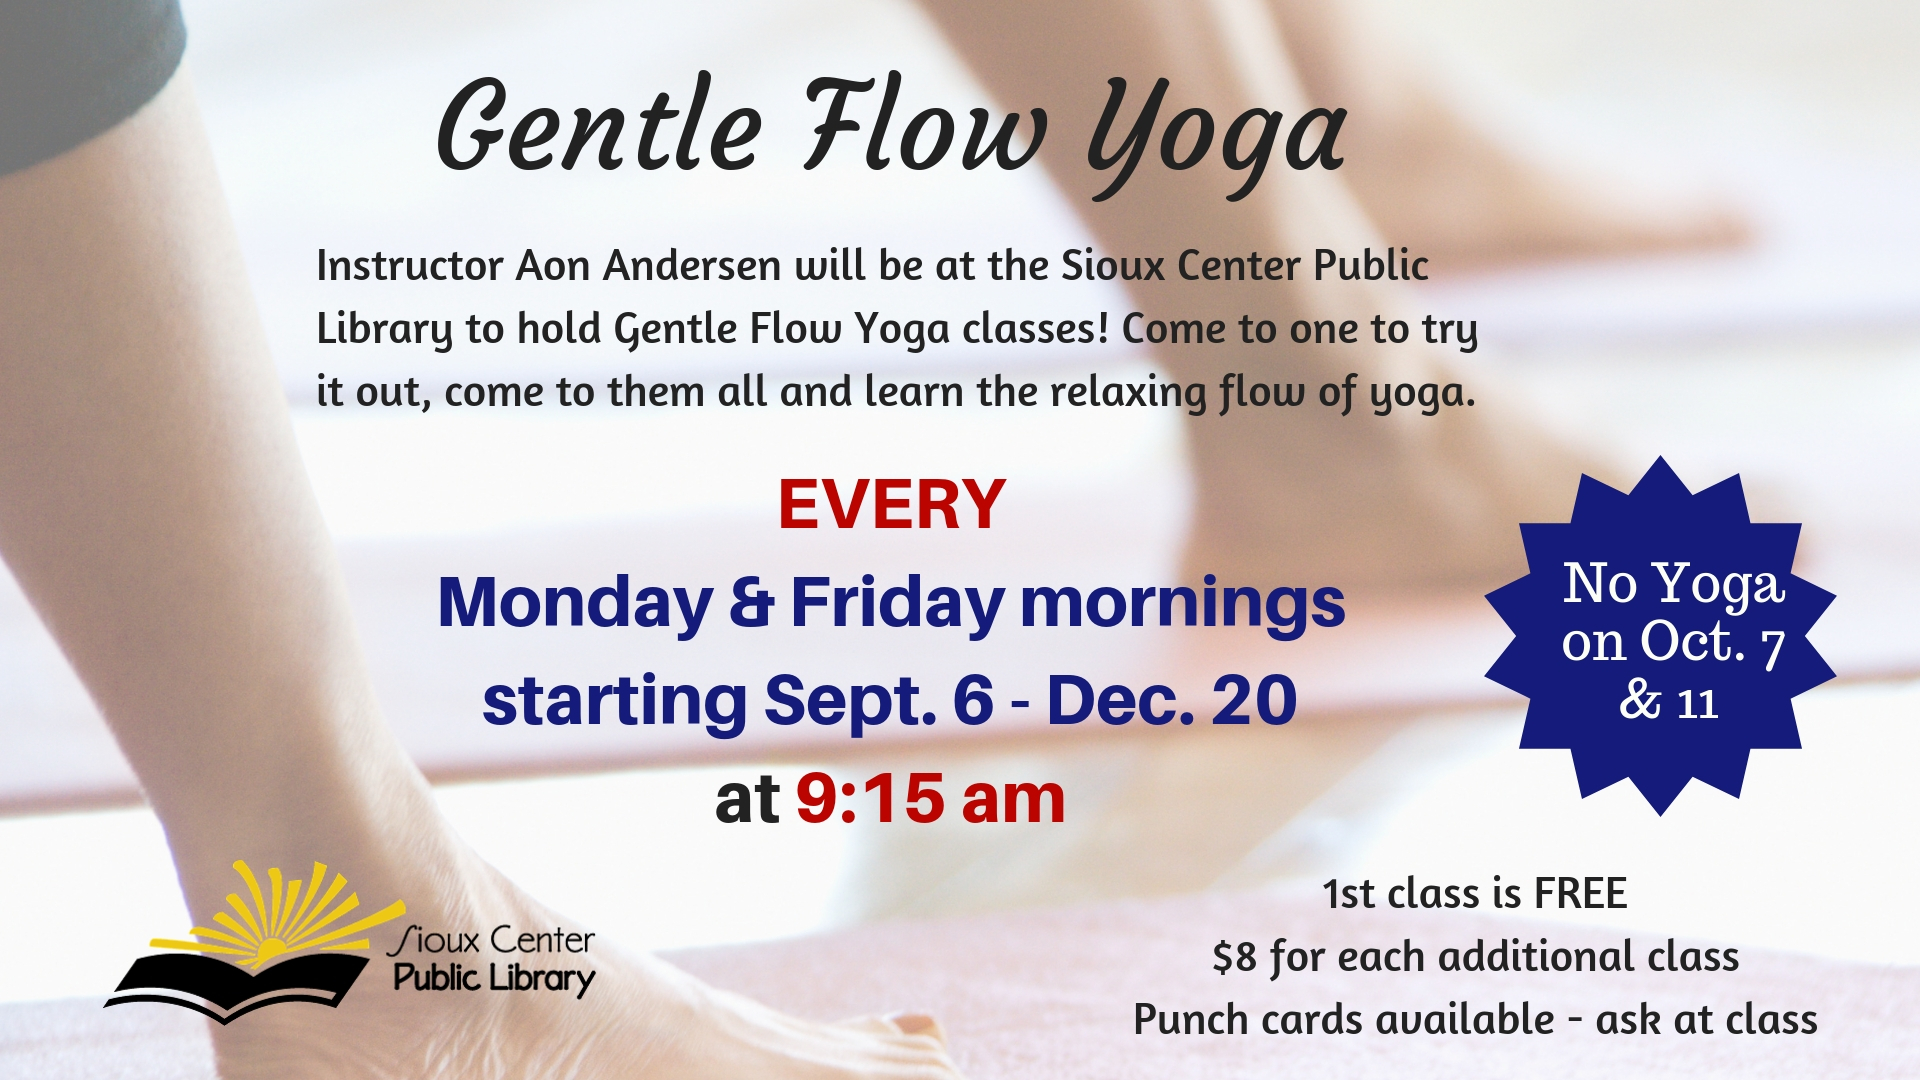 Gentle Flow Yoga